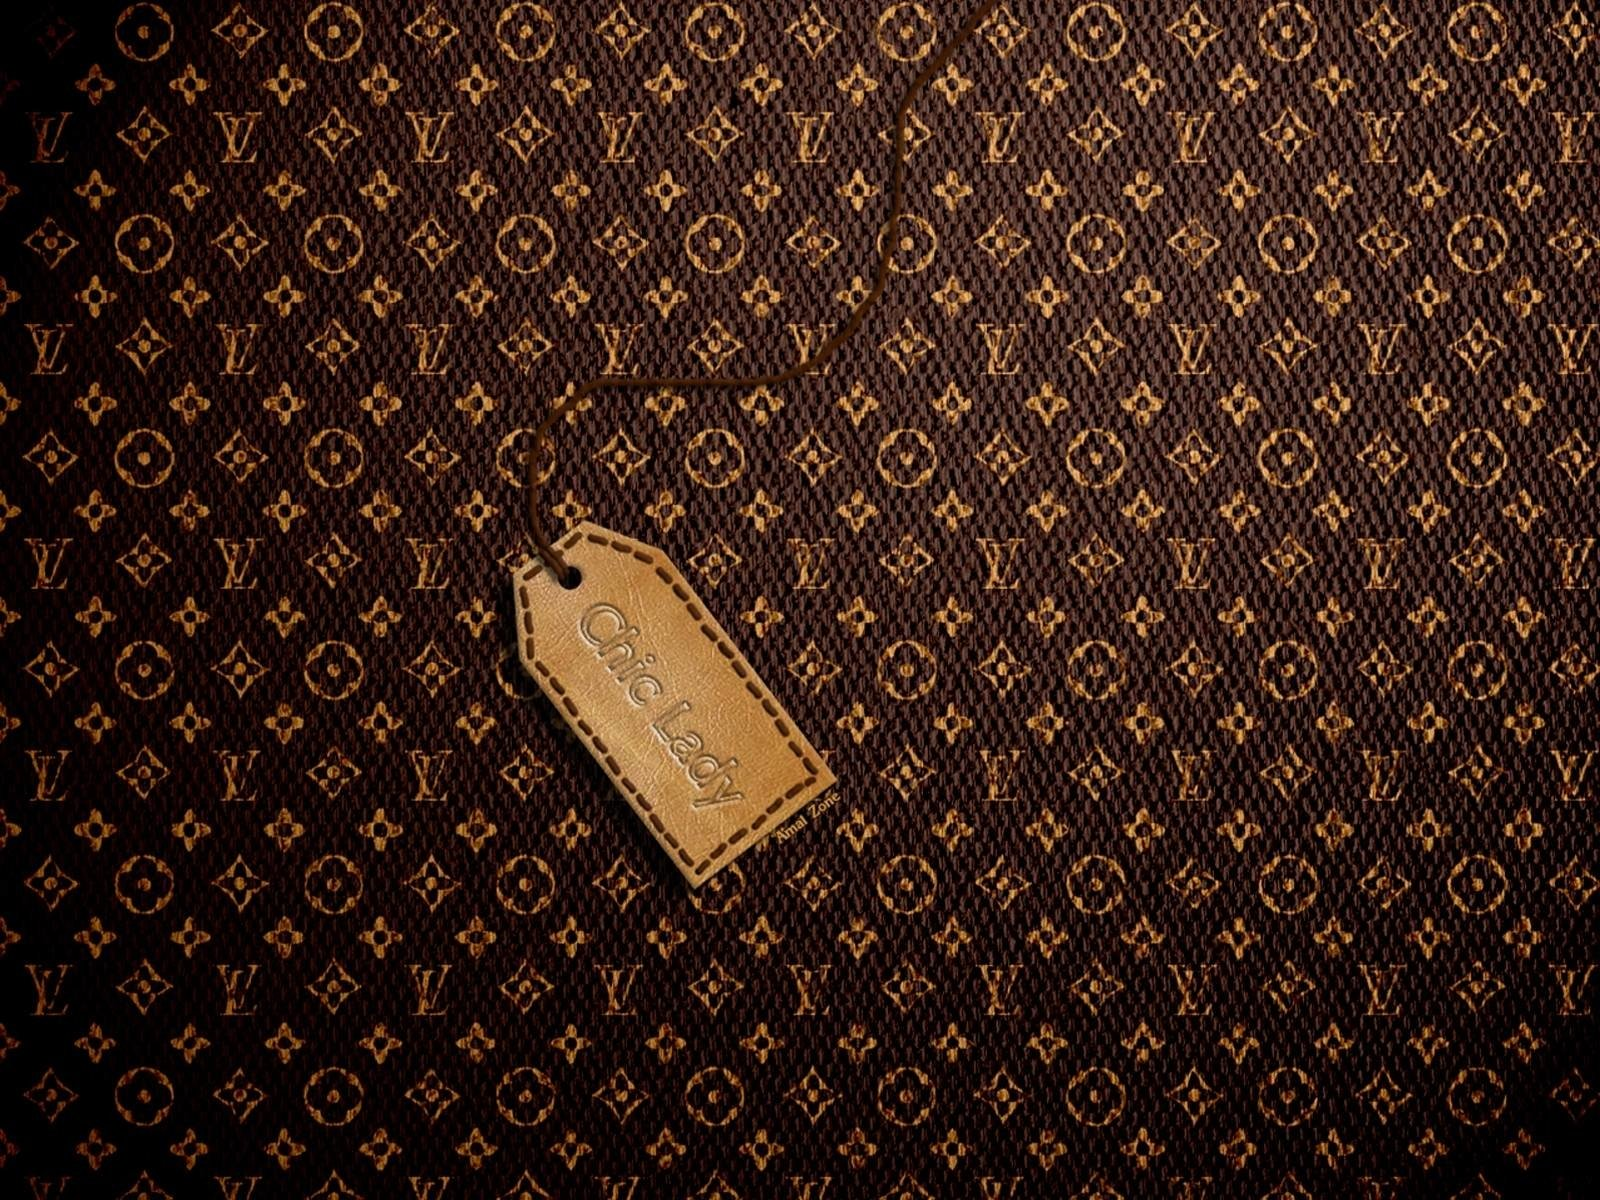 10 louis vuitton hd wallpapers background images wallpaper abyss hd wallpaper background image id820962 1600x1200 products louis vuitton voltagebd Choice Image